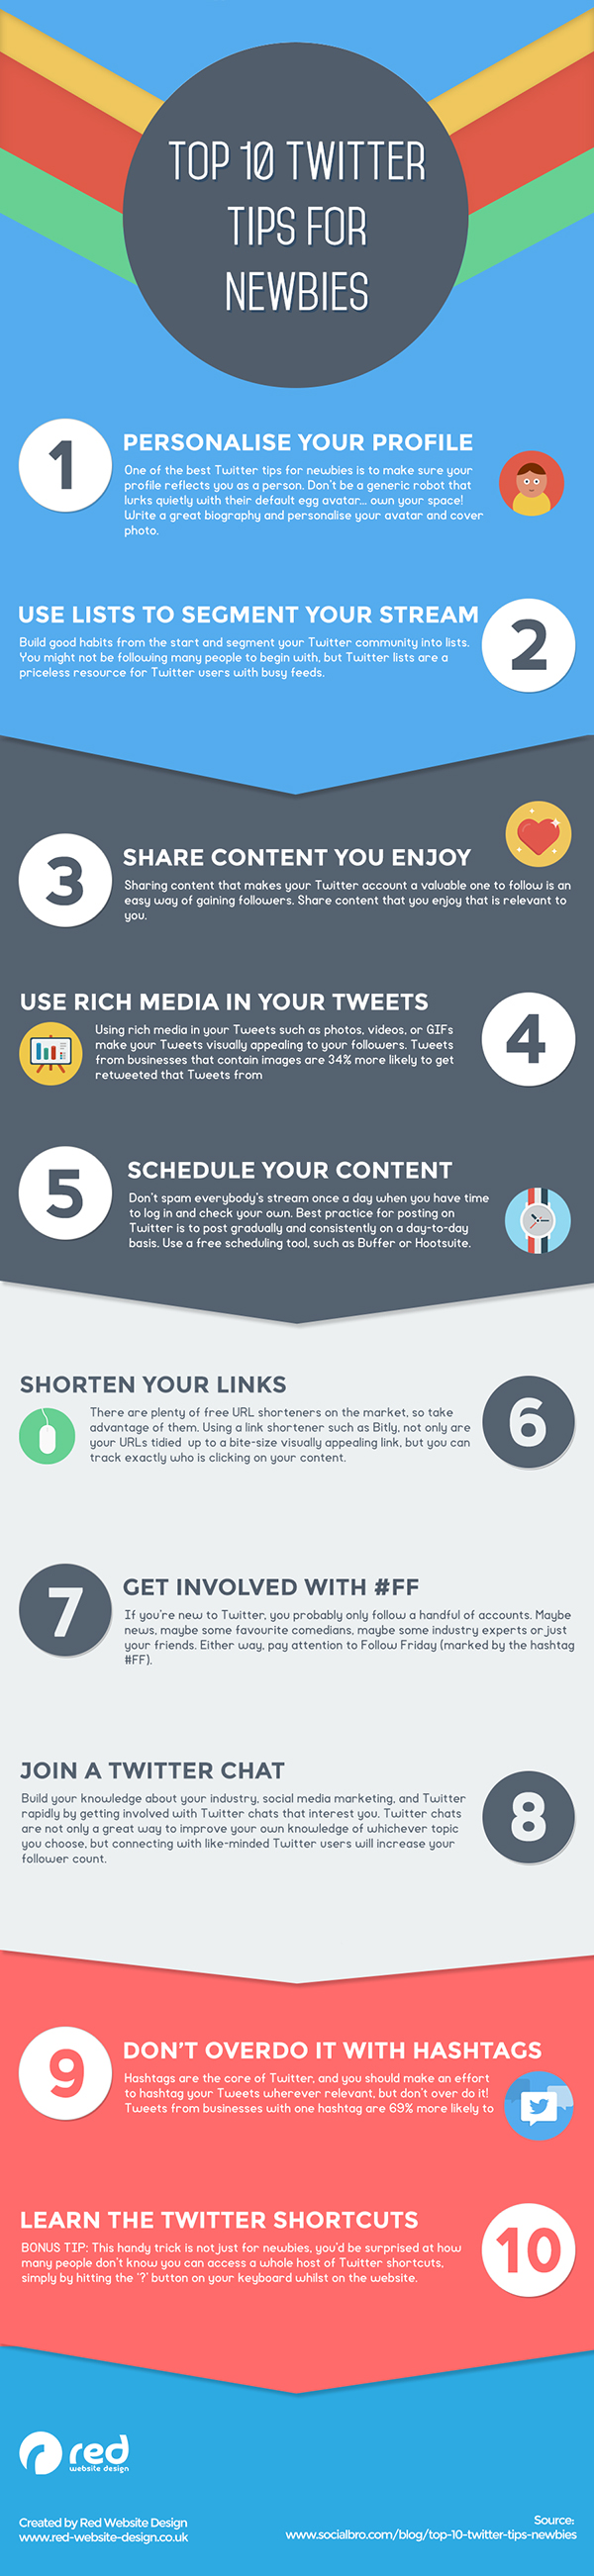 Top 10 Twitter Tips for Newbies